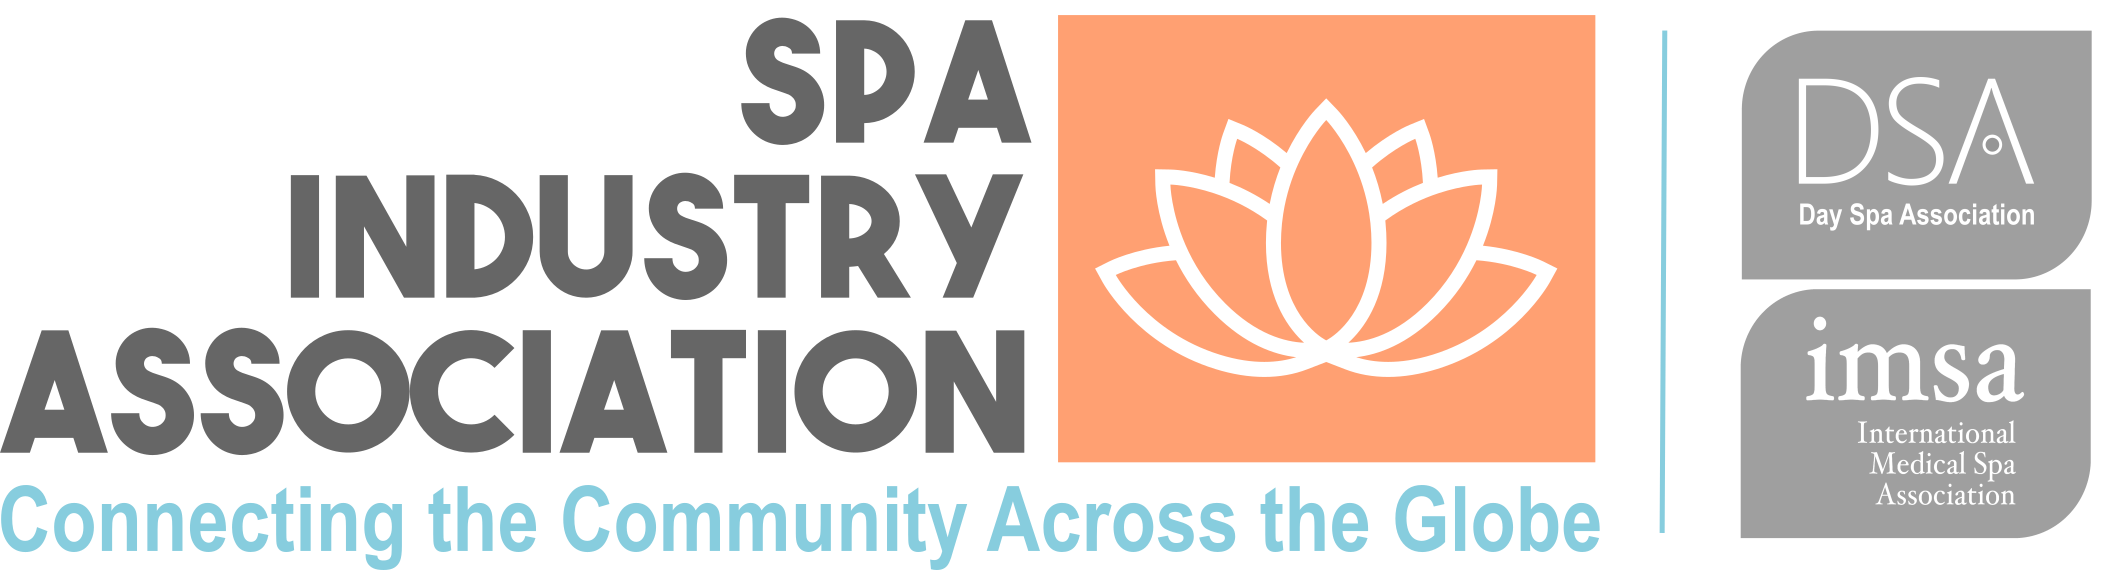 Spa Industry Association partners with SnapRetail to send their marketing emails and to give spas and salons the tools needed to succeed